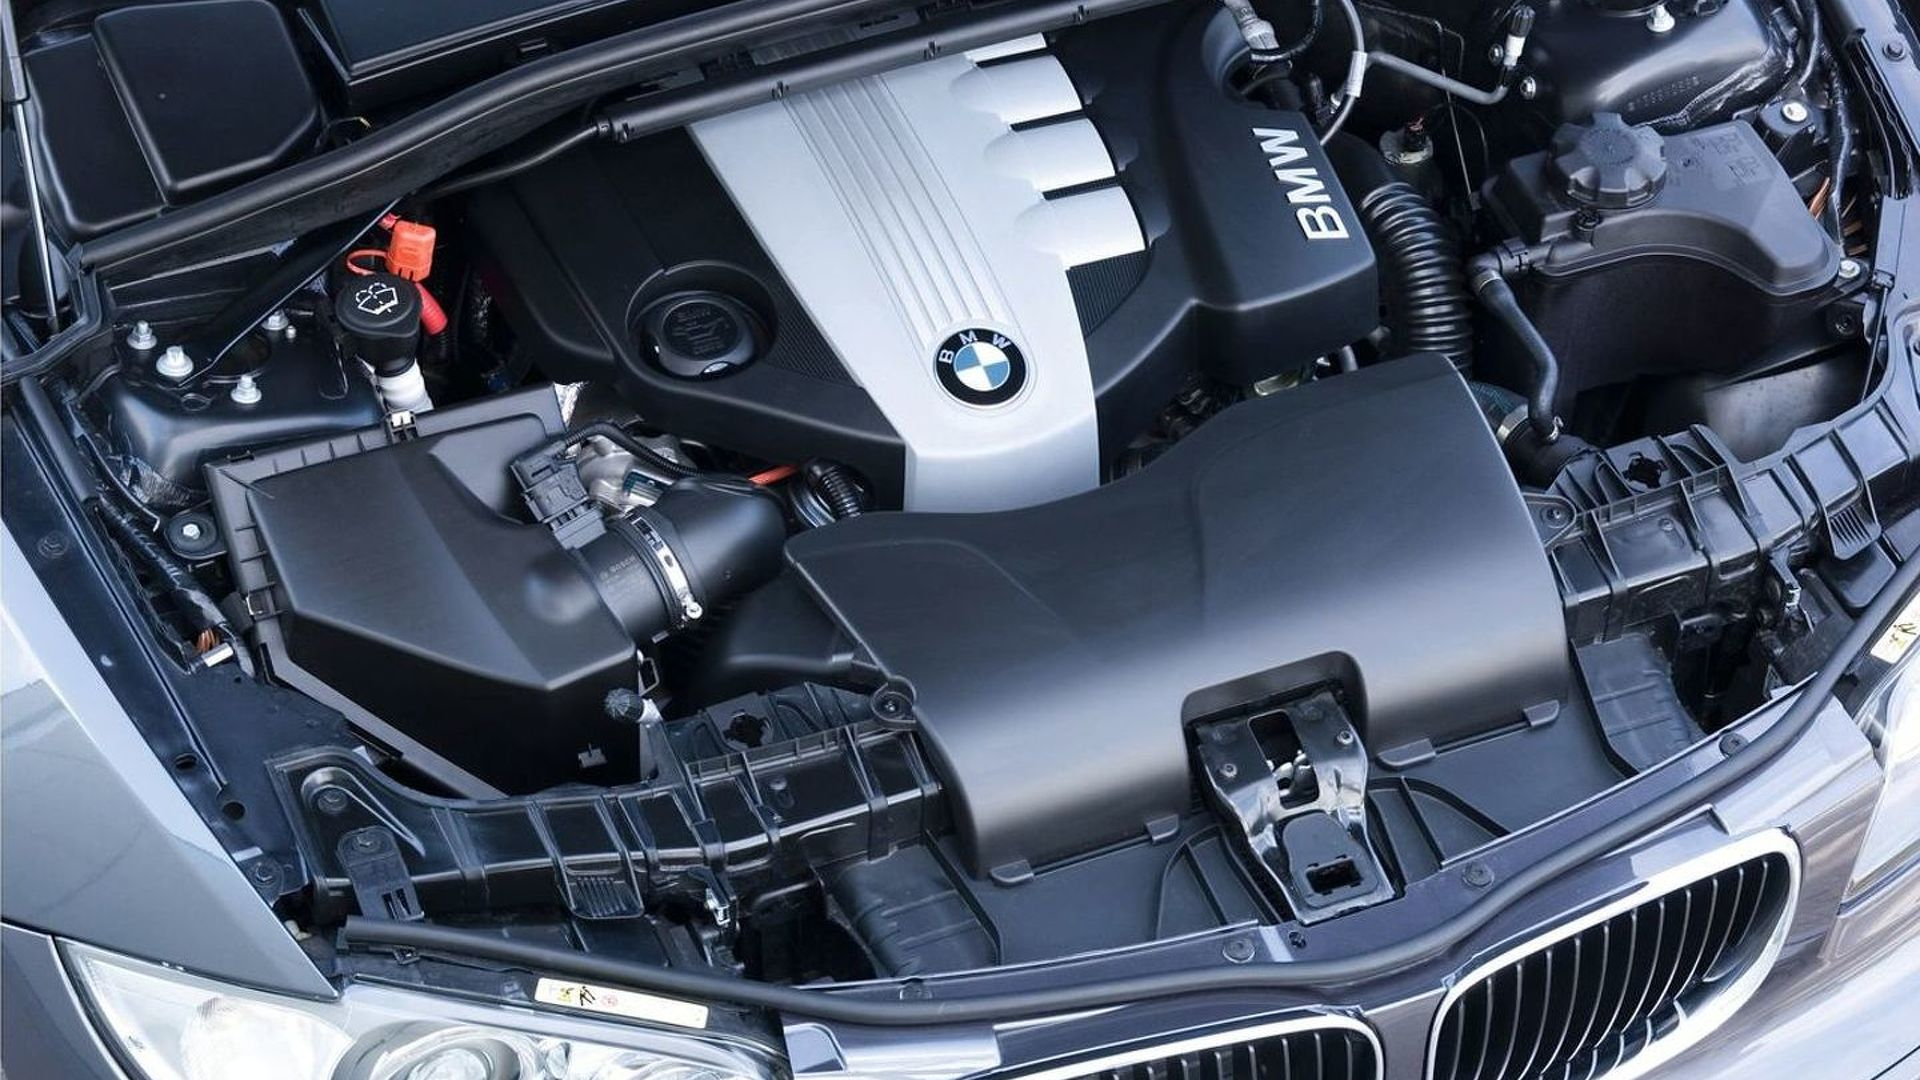 Rumours Next Gen Bmw 1 Series And 3 To Receive Turbo Cylinder